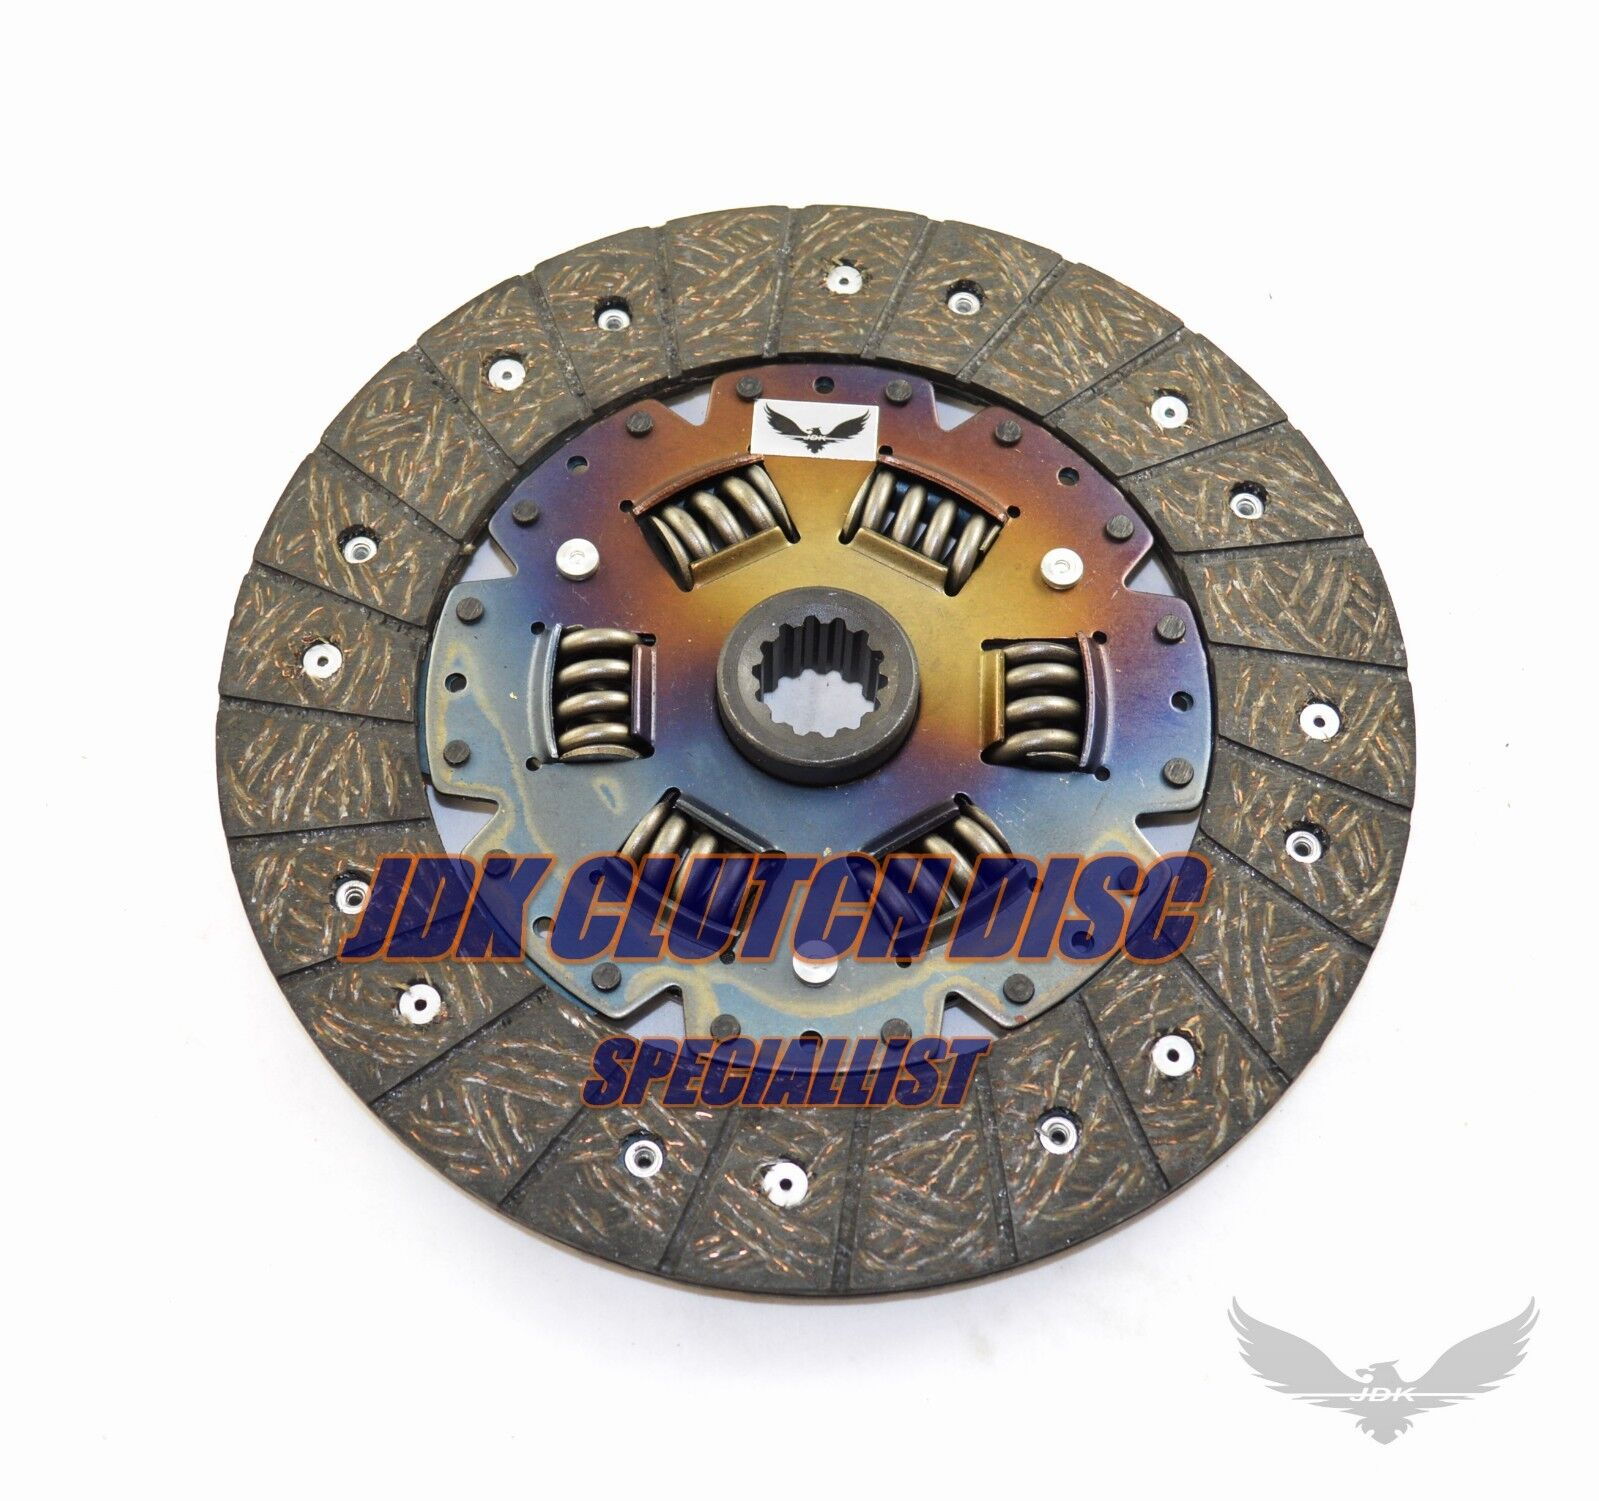 JDK 2007 2009 PONTIAC G5 GT LS SE DOHC STAGE2 PERFORMANCE CLUTCH DISC 8 7/8